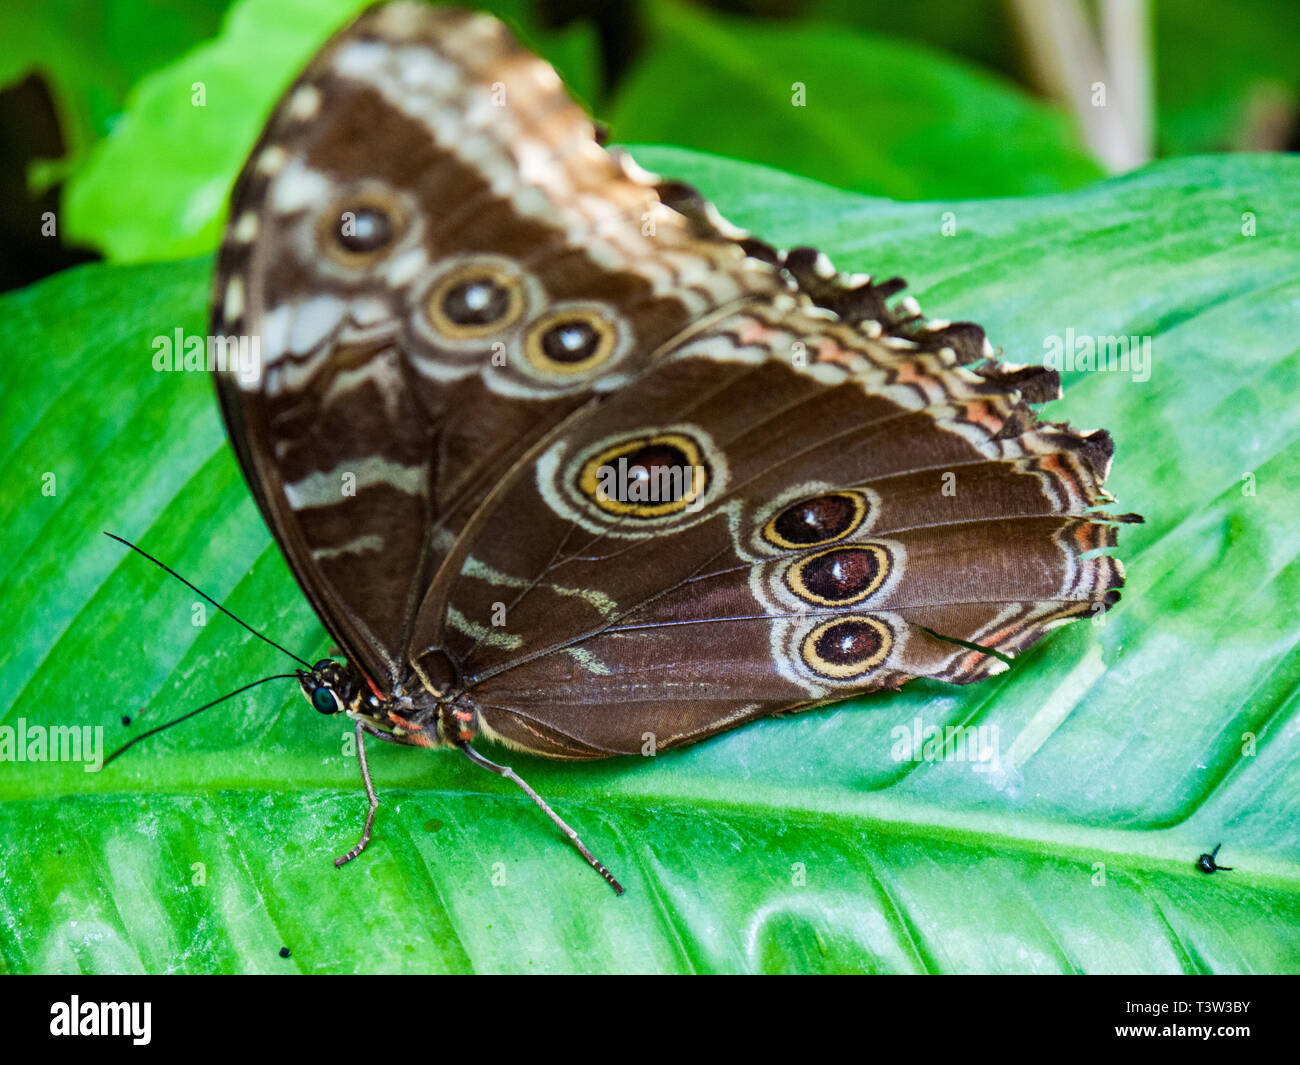 Owl butterly, tropical house, Amsterdam zoo, the Netherlands - Stock Image